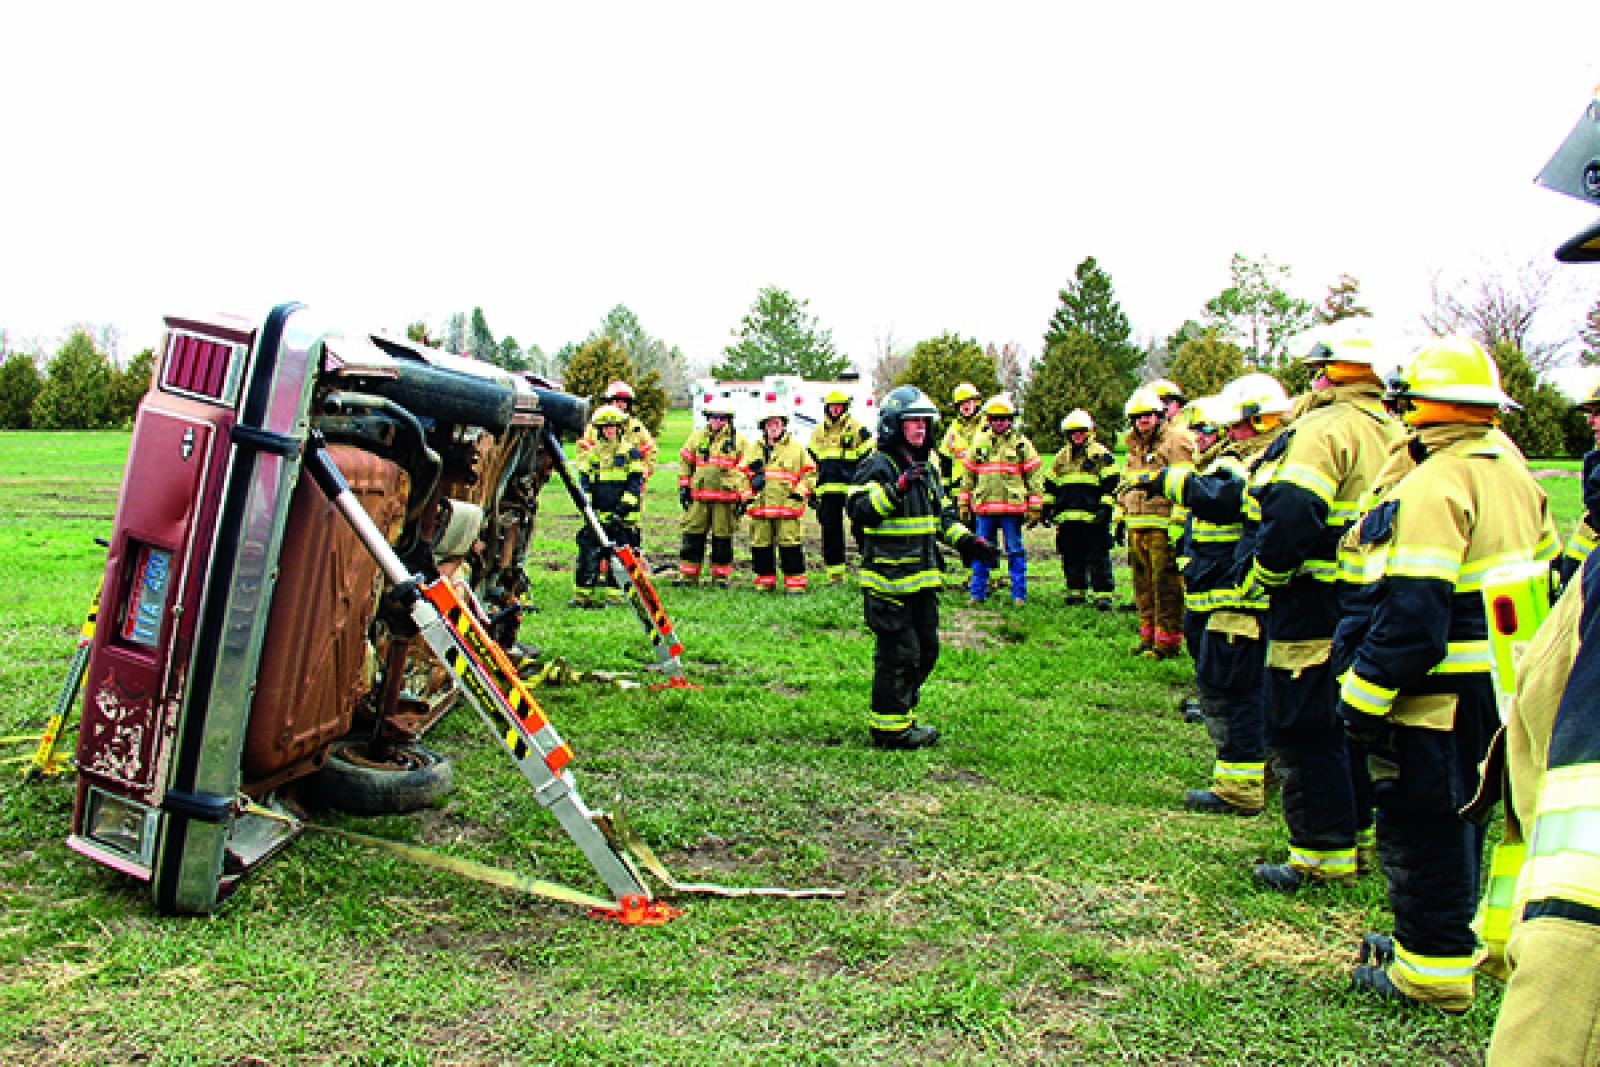 Sandry Fire Supply provides training for local Fire Departments